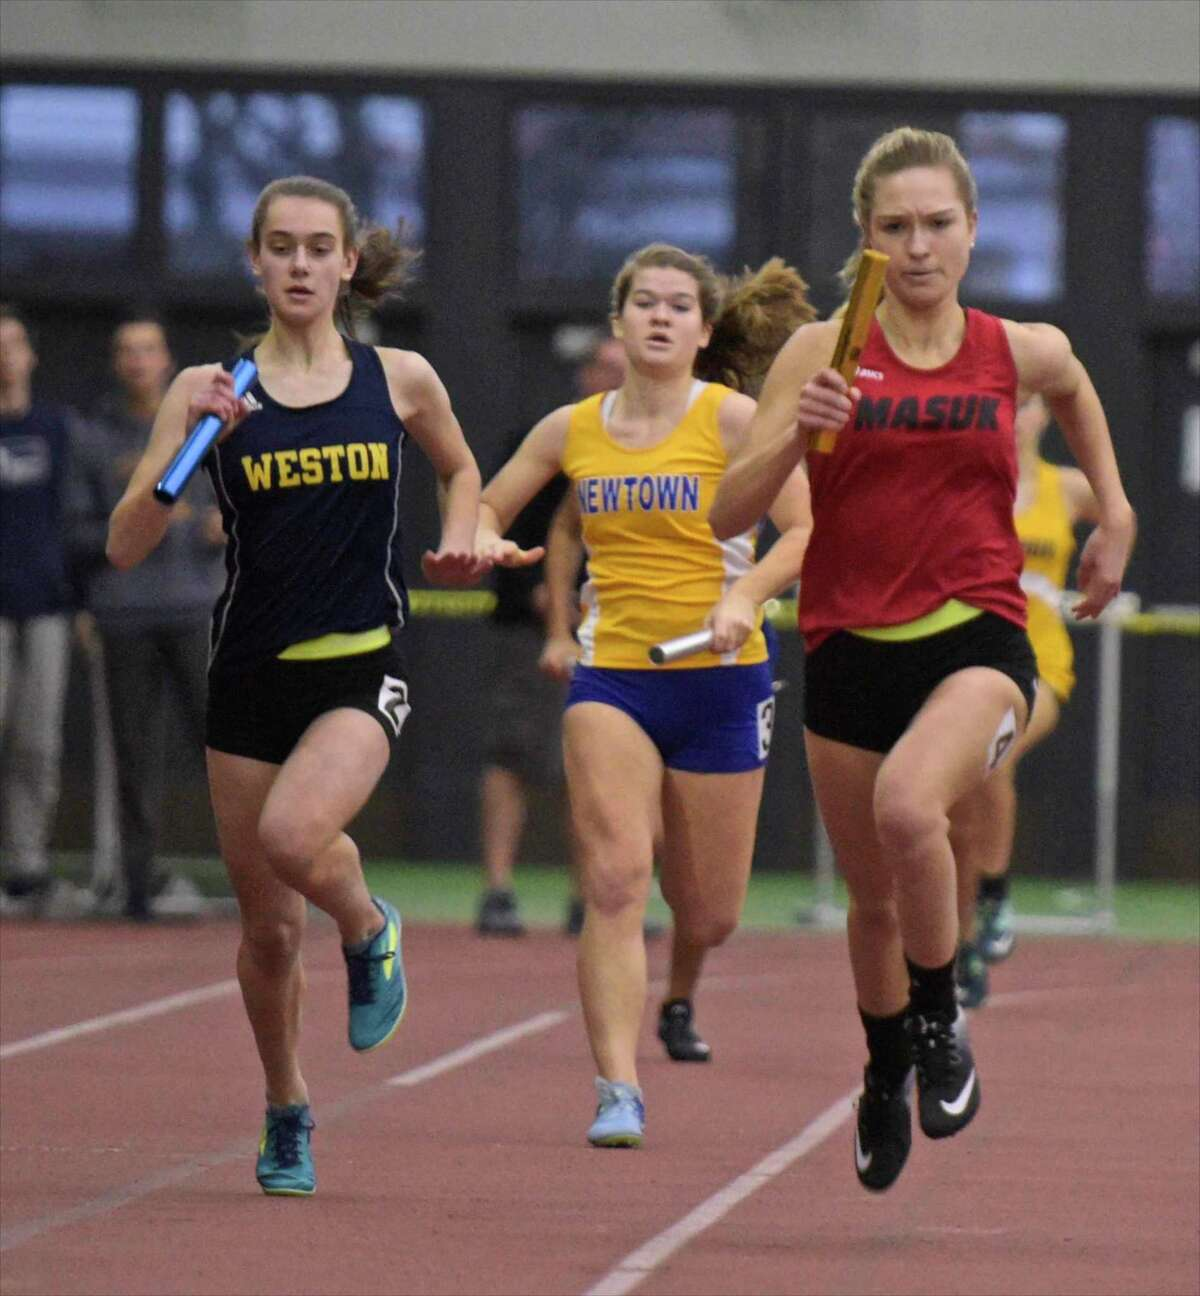 SWC girls indoor track championship at Floyd Little Athletic Center, New Haven, Conn, on Saturday night, February 3, 2018.